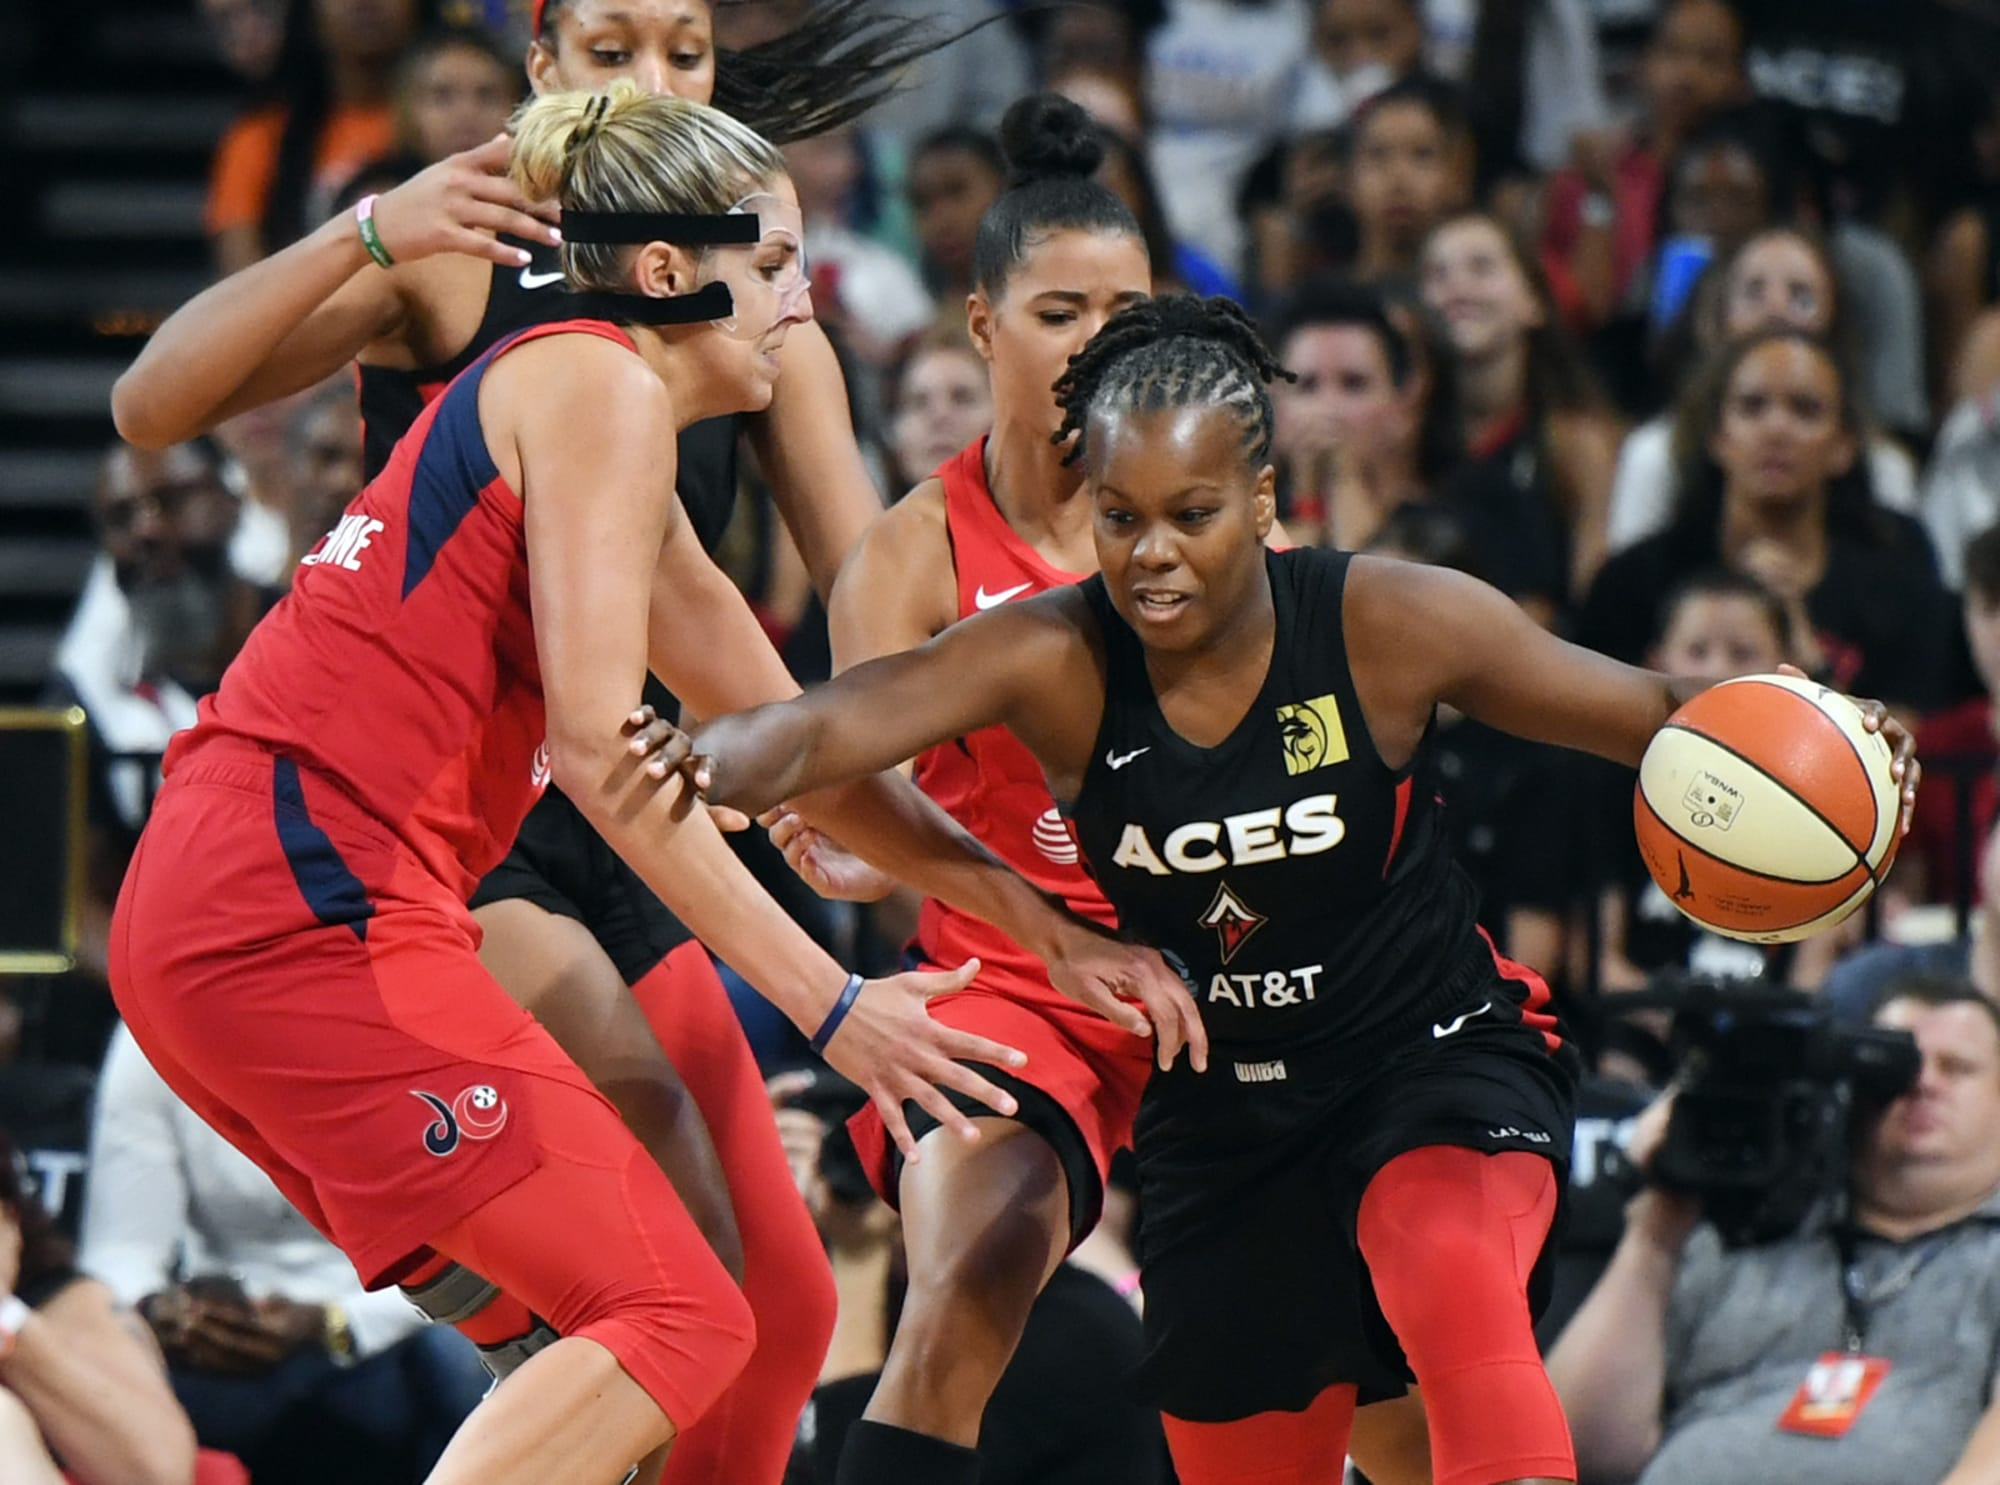 Your Day in Women's Basketball, January 15: New ownership in Las Vegas as Davis purchases Aces